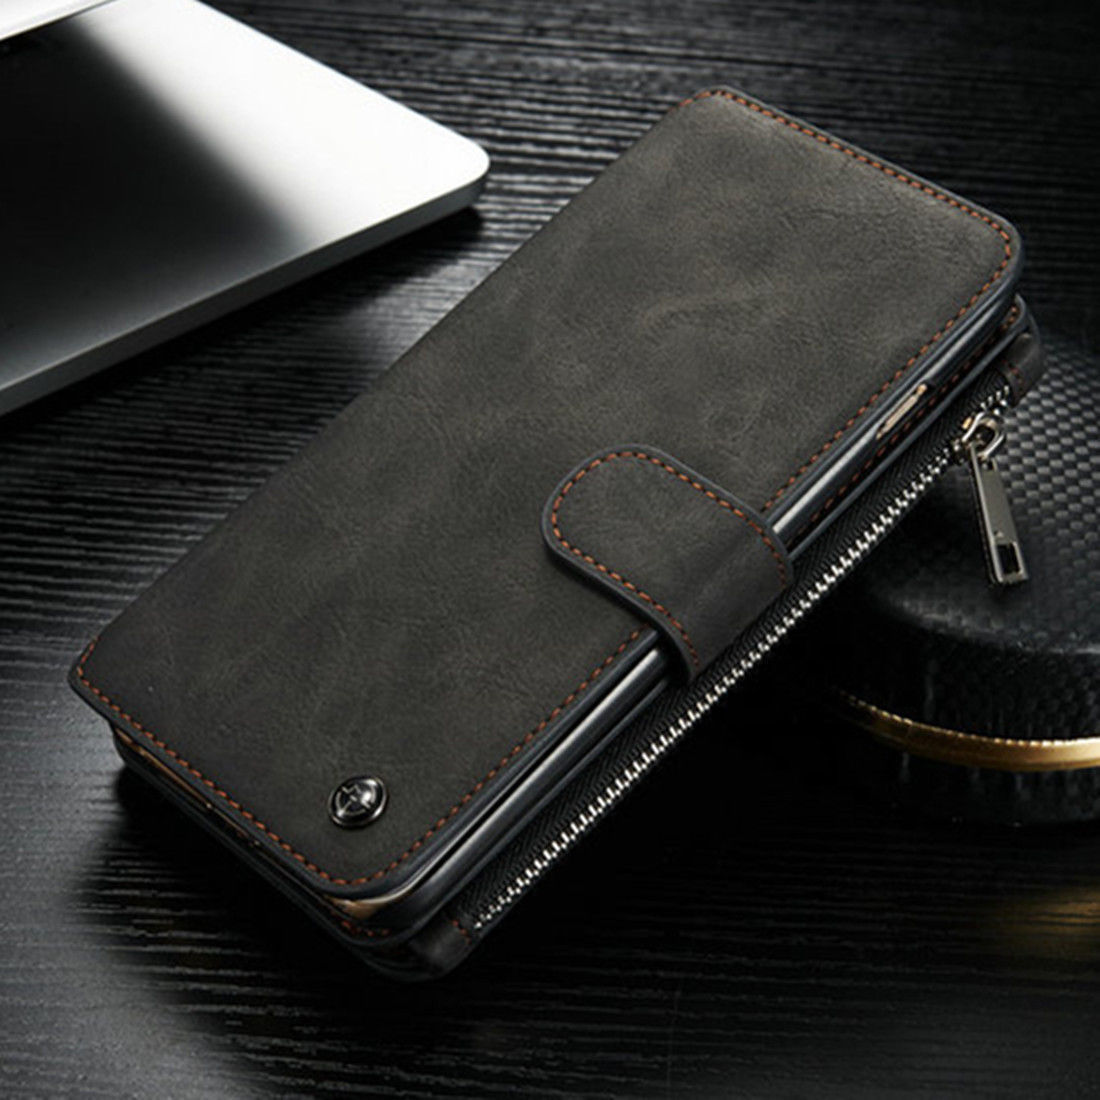 new arrival 07a1a 61b52 US $10.82 |Luxury Flip Leather Case For iPhone 7 5 6 6s Plus Zipper Mini  Man Purse Wallet Card Slot Holder Bag Cover For Samsung S6 S7 Edge-in  Wallet ...